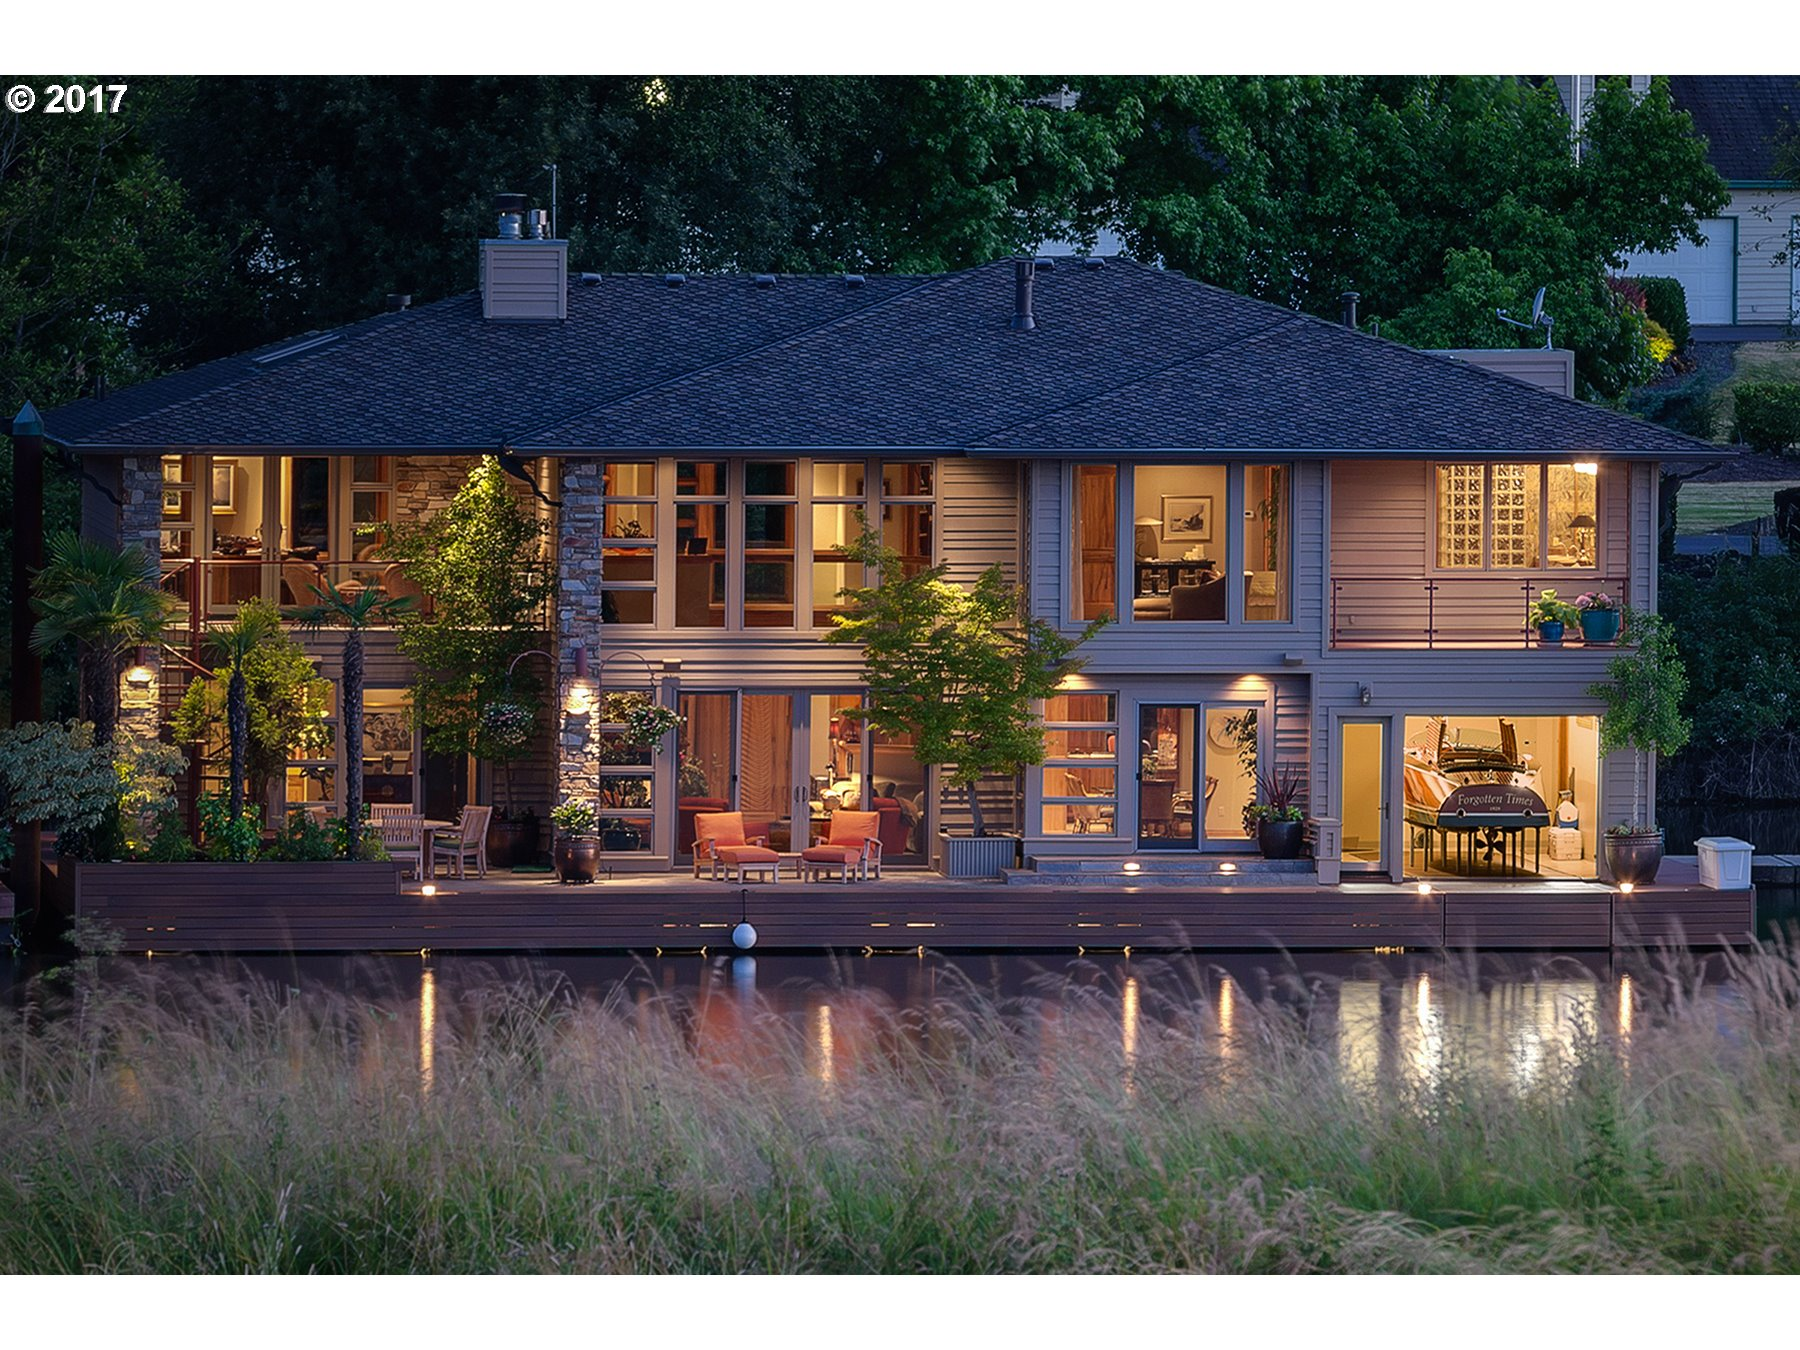 Floating homes for sale in portland oregon floating home Floating homes portland